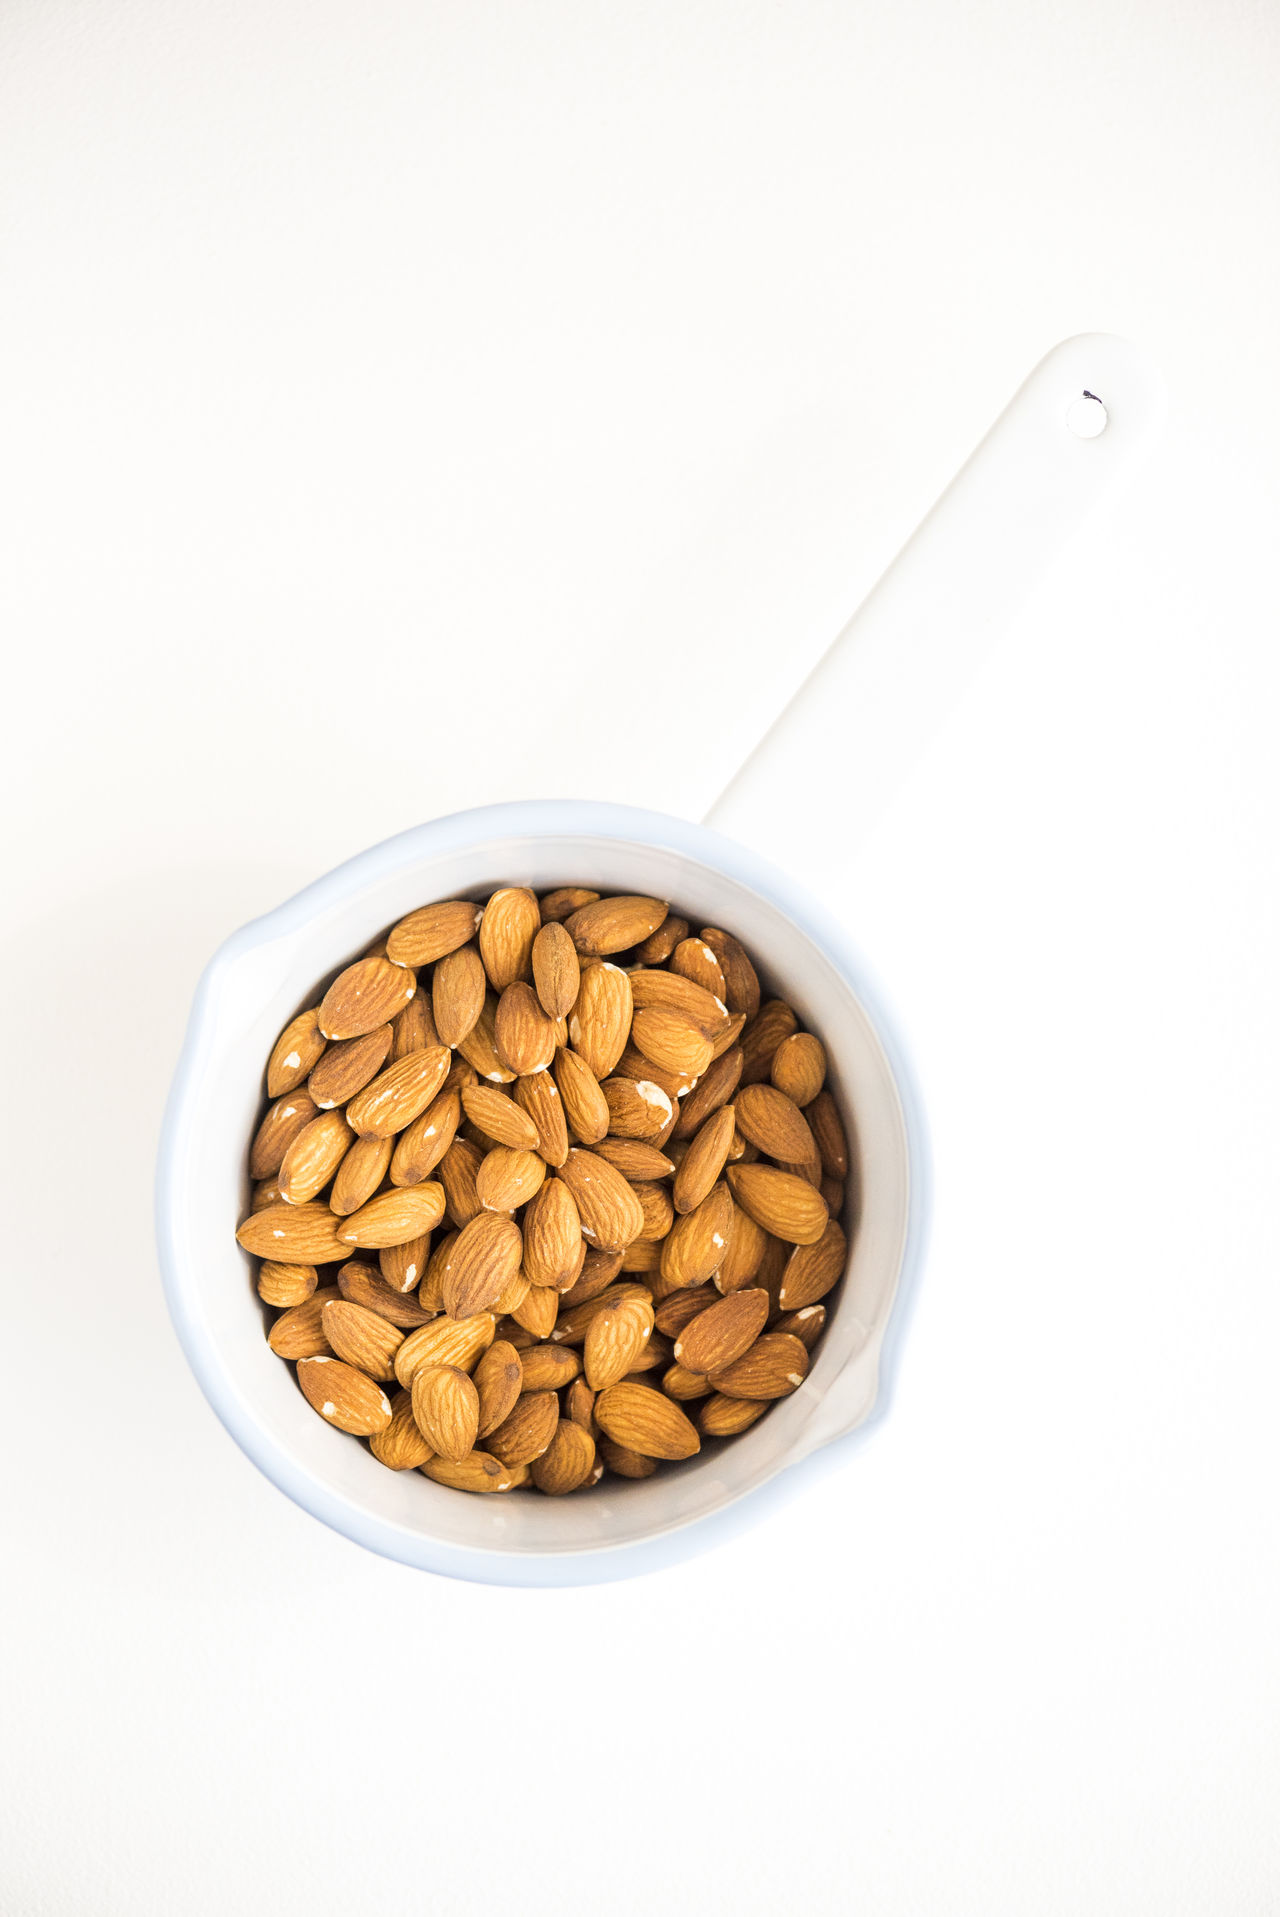 Abundance Almond Bowl Close-up Container Cut Out Directly Above Food Freshness No People Nuts Overhead View Pot Raw Raw Food Ready-to-eat Still Life Studio Shot Top Perspective Top Shot White White Background